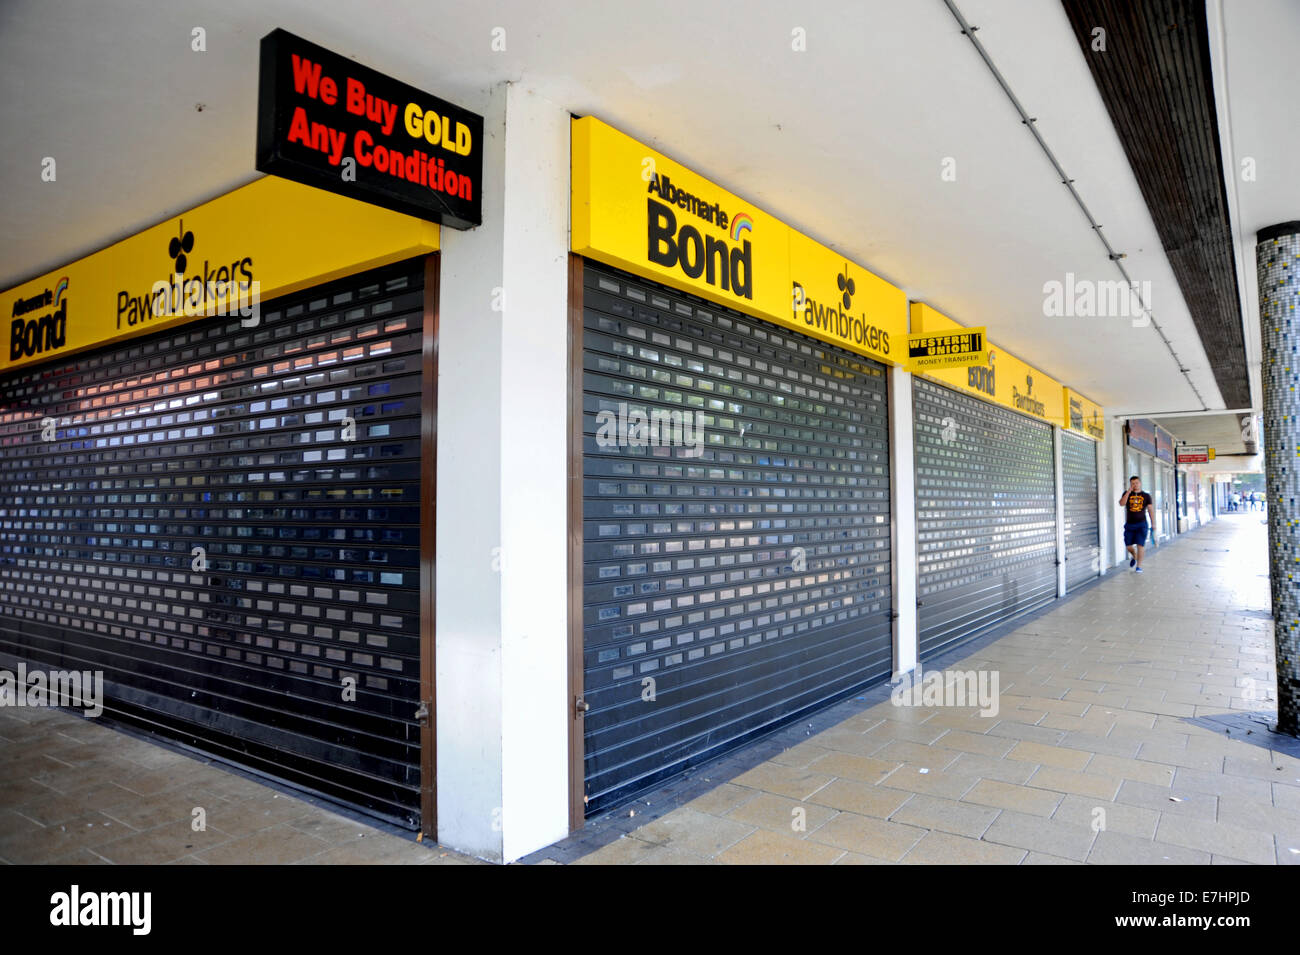 Crawley West Sussex UK - Albermarle Bond Pawnbrokers shop closed down and empty - Stock Image